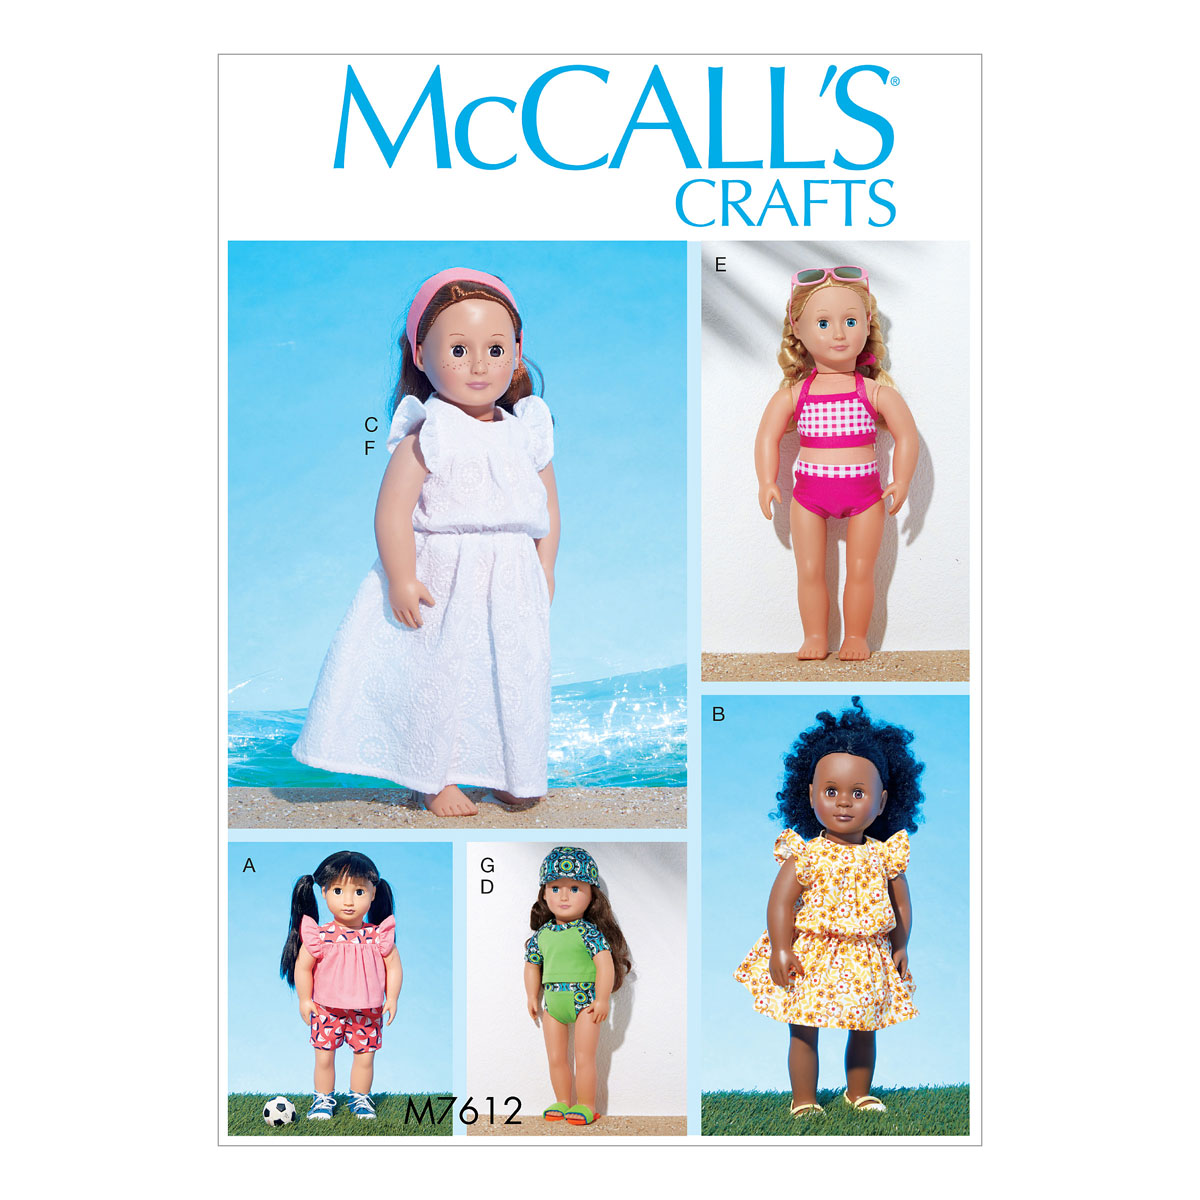 Mccalls sewing pattern m7612 18 in doll top and shorts swimsuit image is loading mccalls sewing pattern m7612 18 in doll top jeuxipadfo Gallery